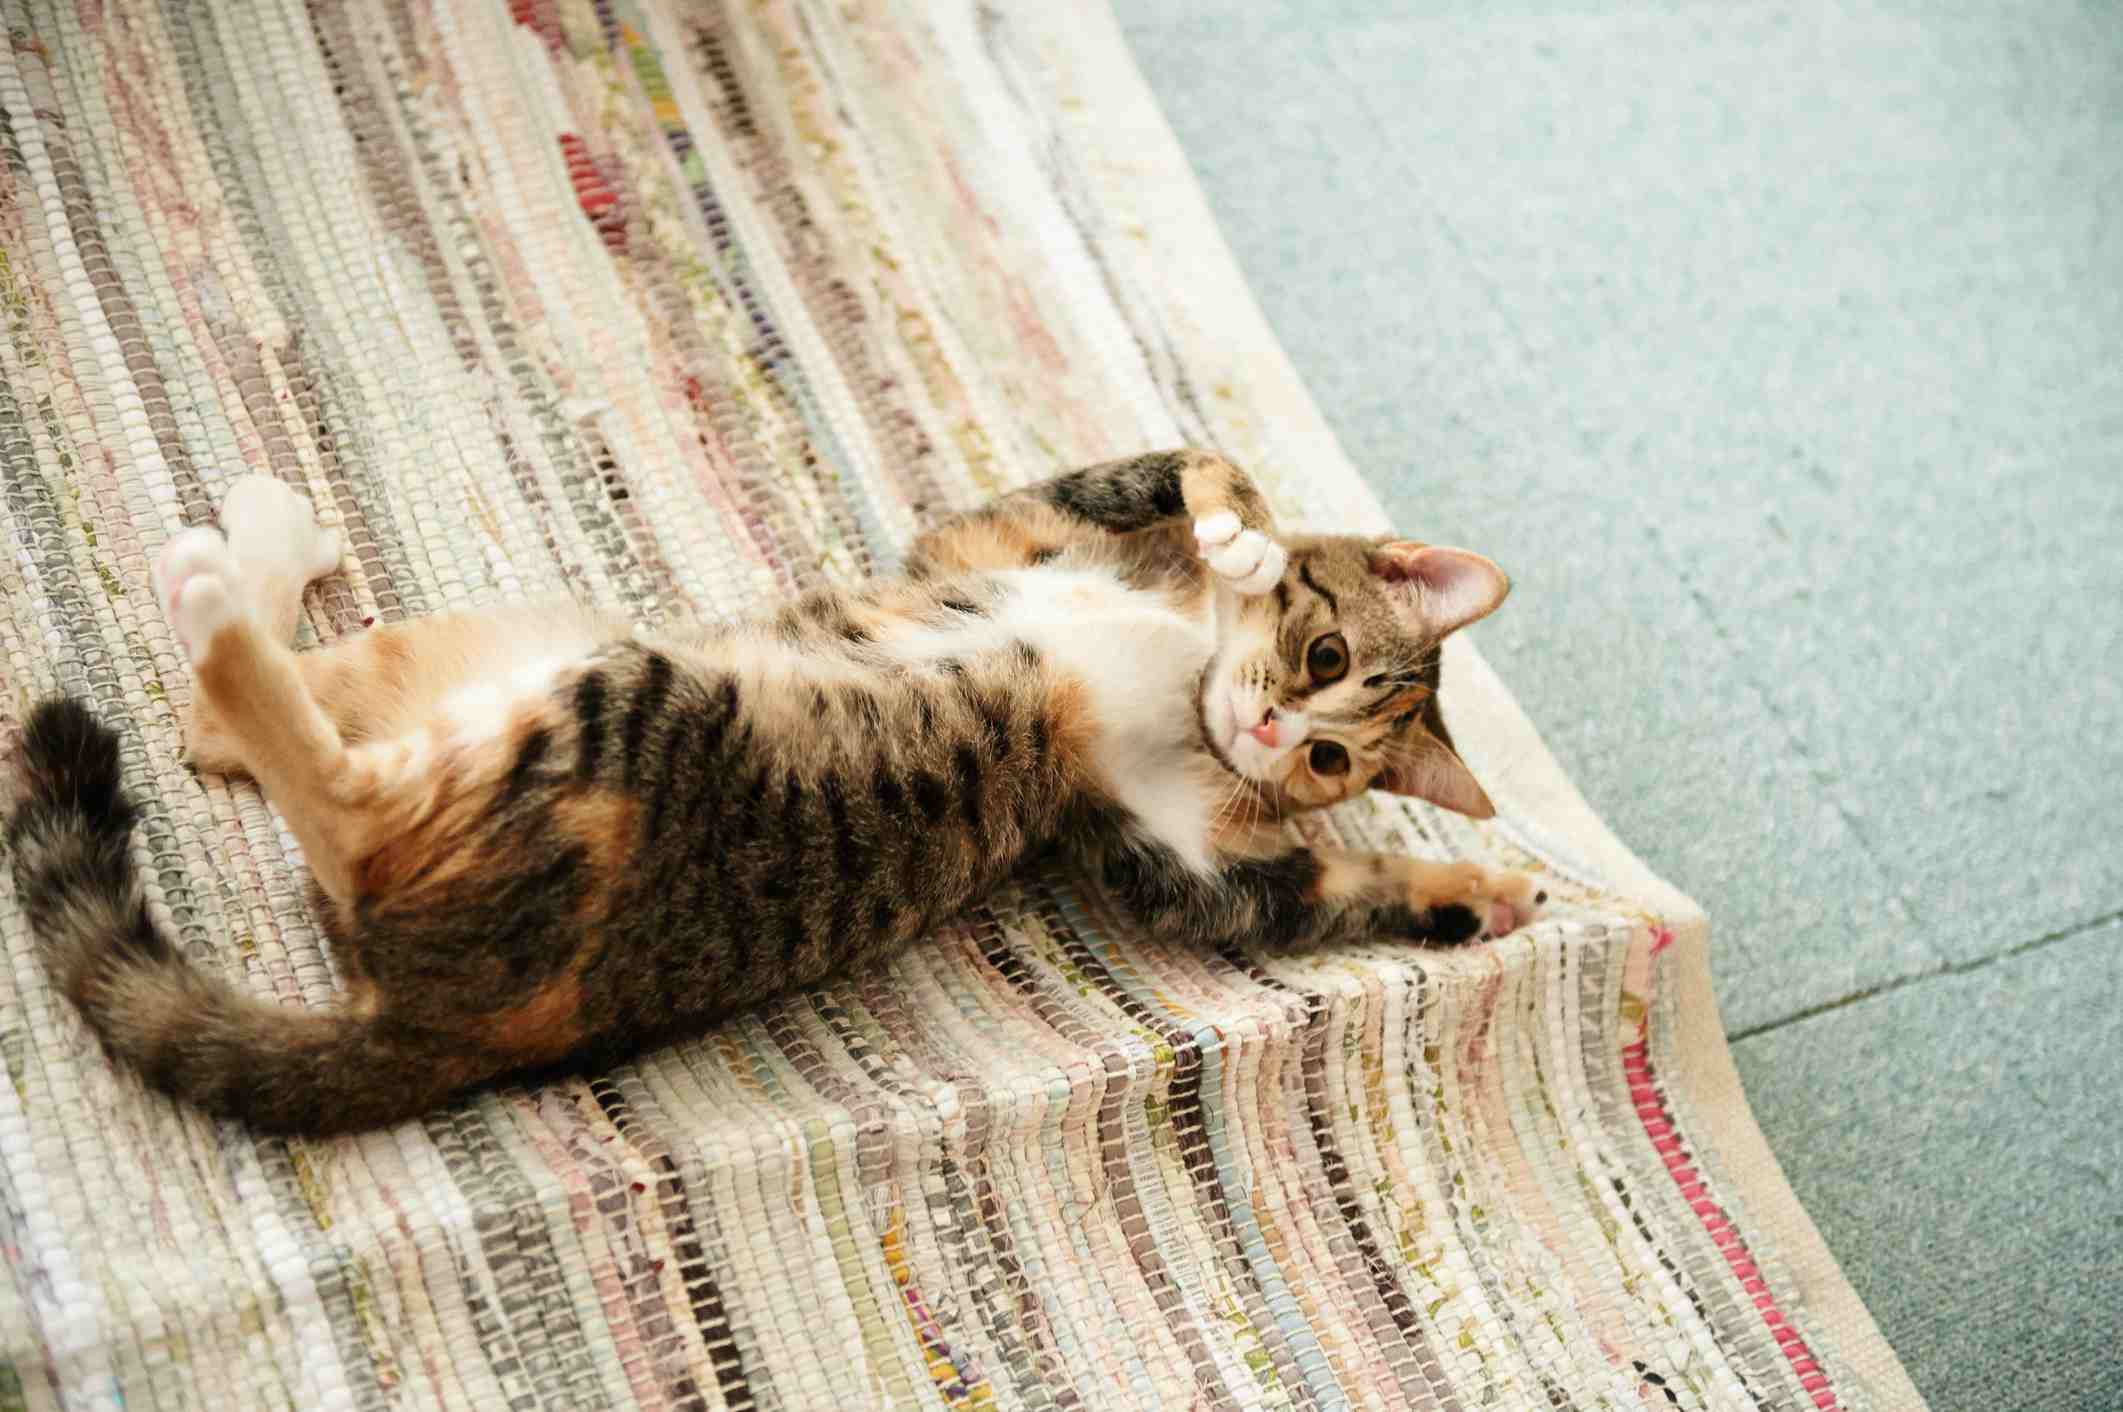 Calico cat rolling on rug